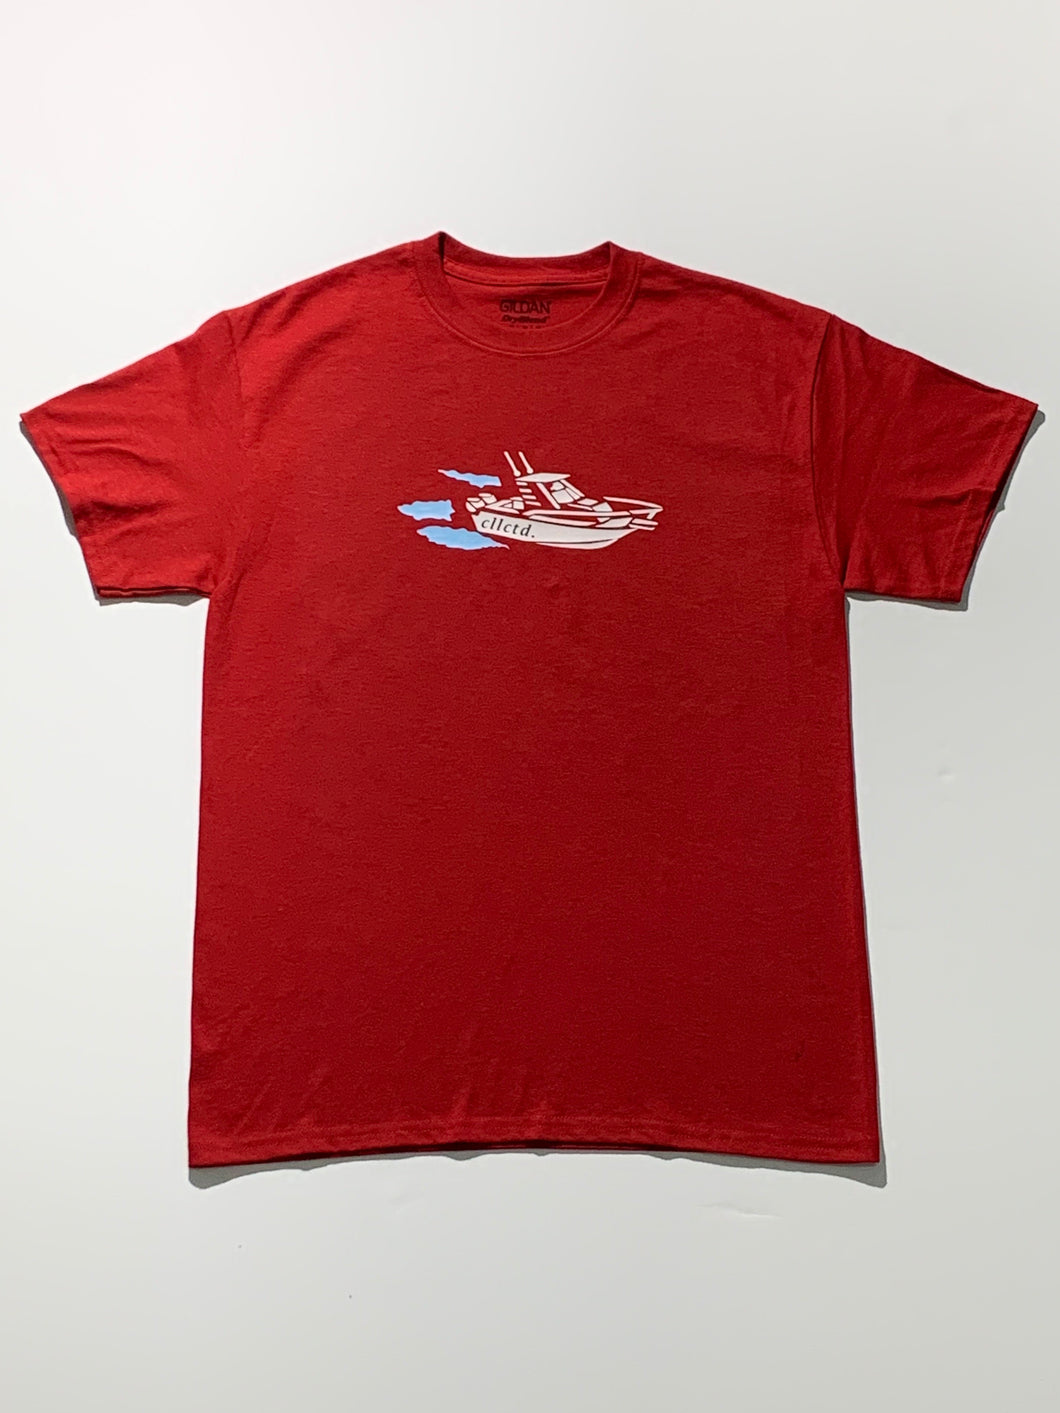 Boat Tee size M